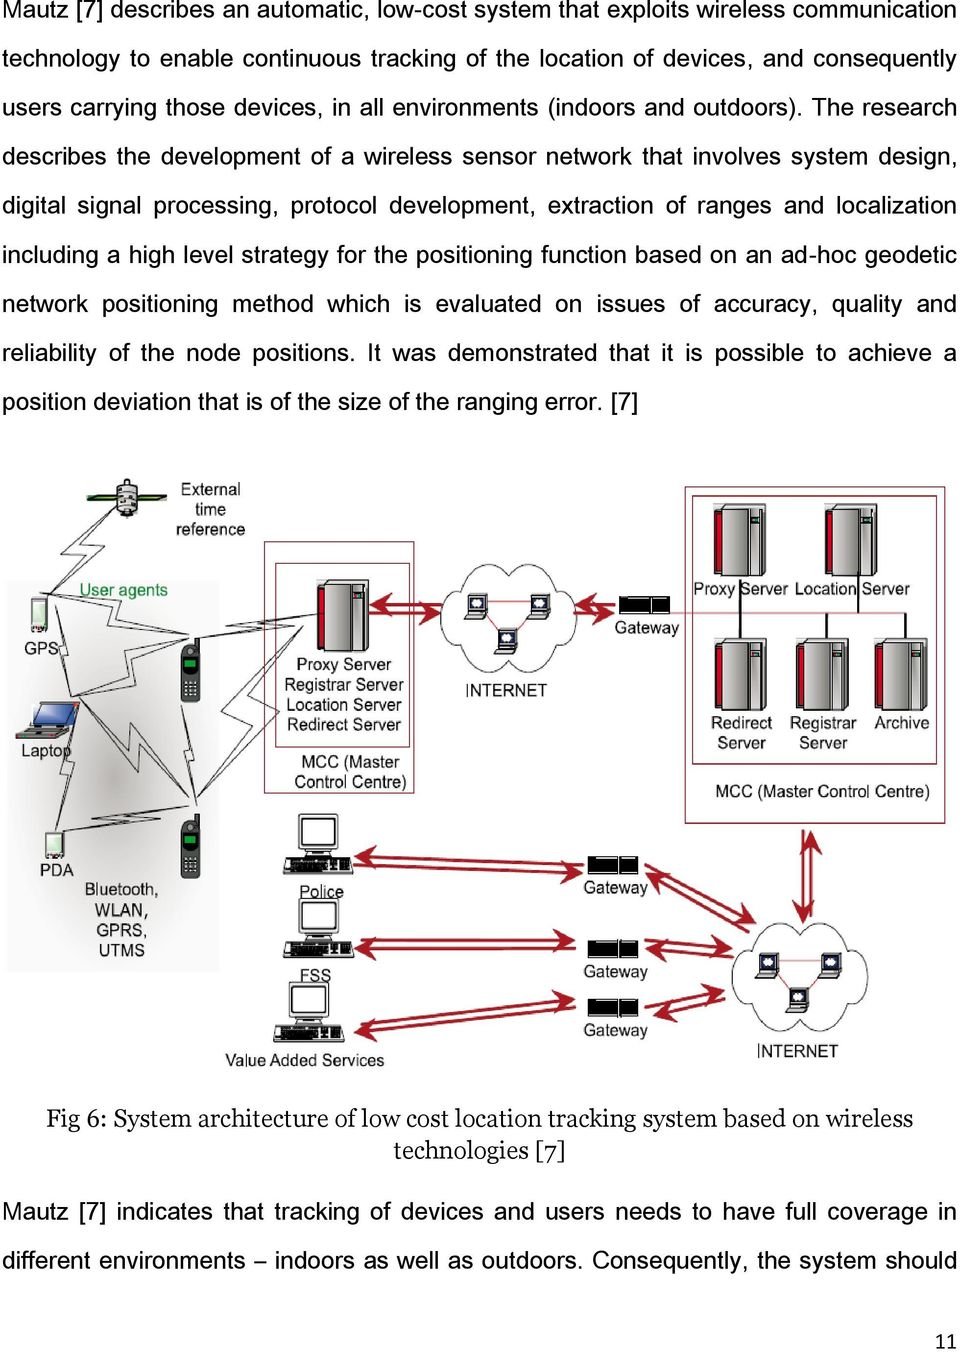 The research describes the development of a wireless sensor network that involves system design, digital signal processing, protocol development, extraction of ranges and localization including a